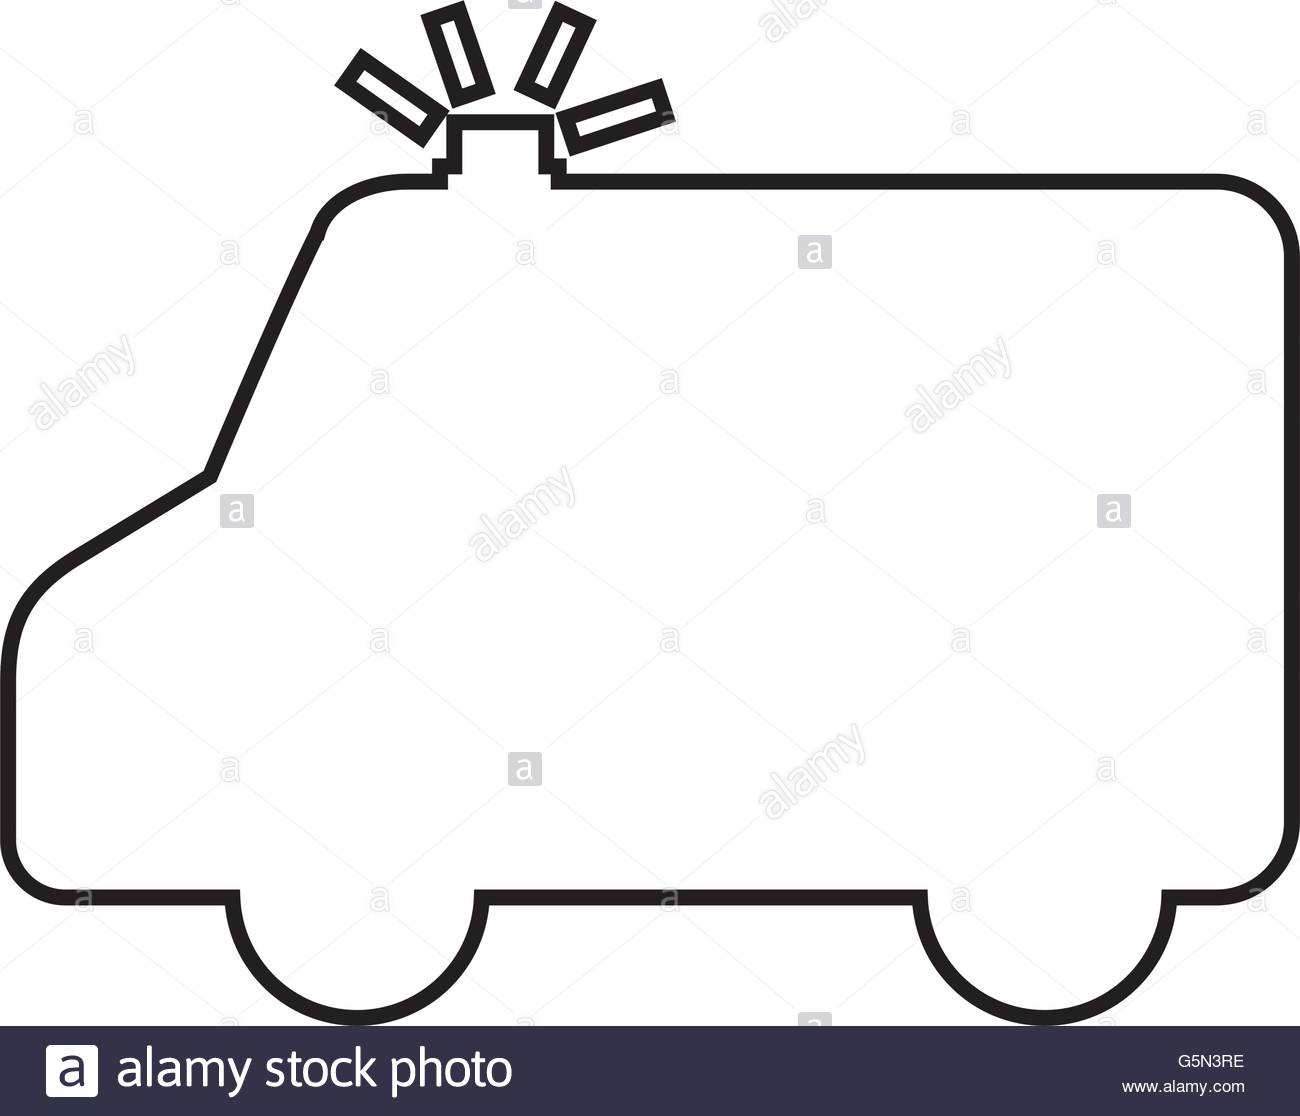 1300x1116 Ambulance Silhouette Isolated Icon Design Stock Vector Art